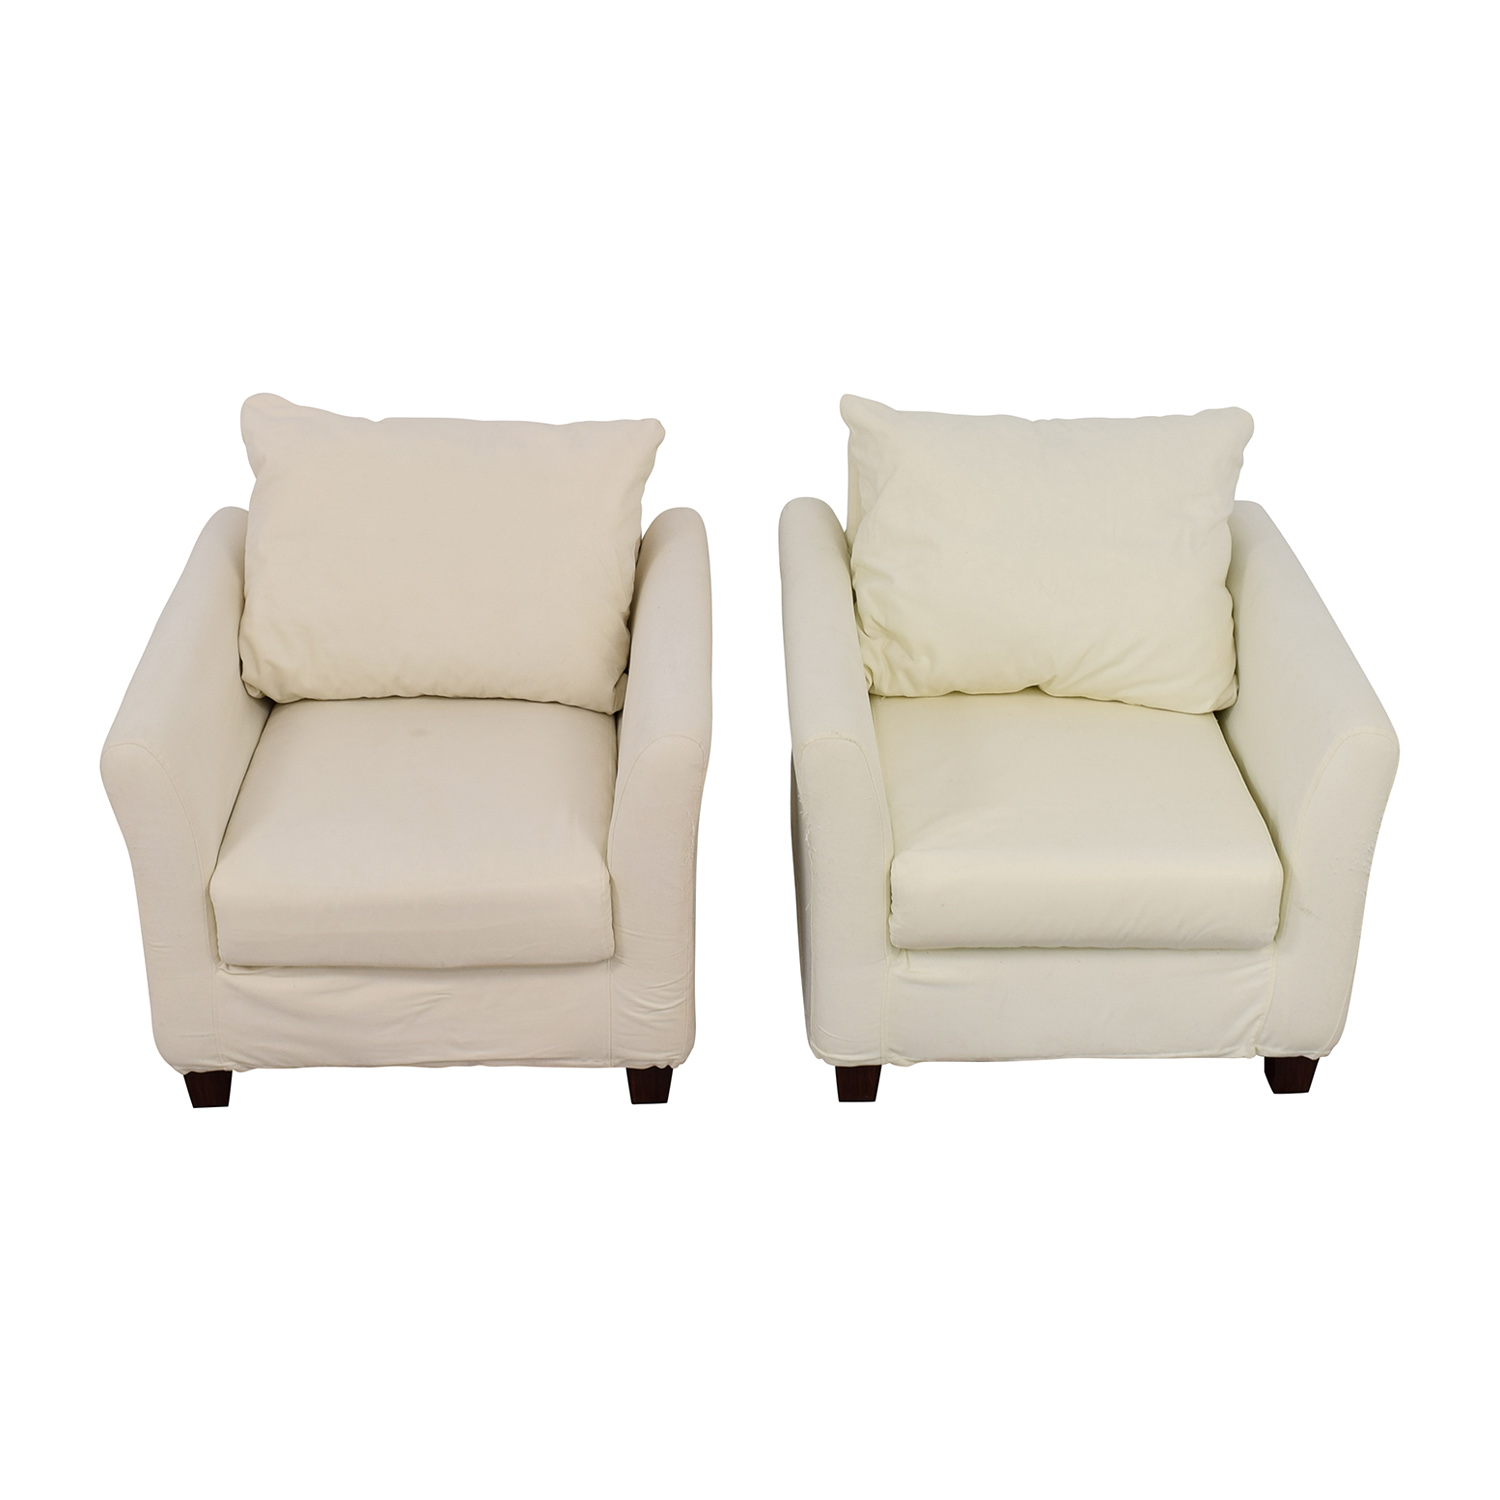 White Accent Chairs Used.90 Off World Market World Market White Accent Chairs Chairs